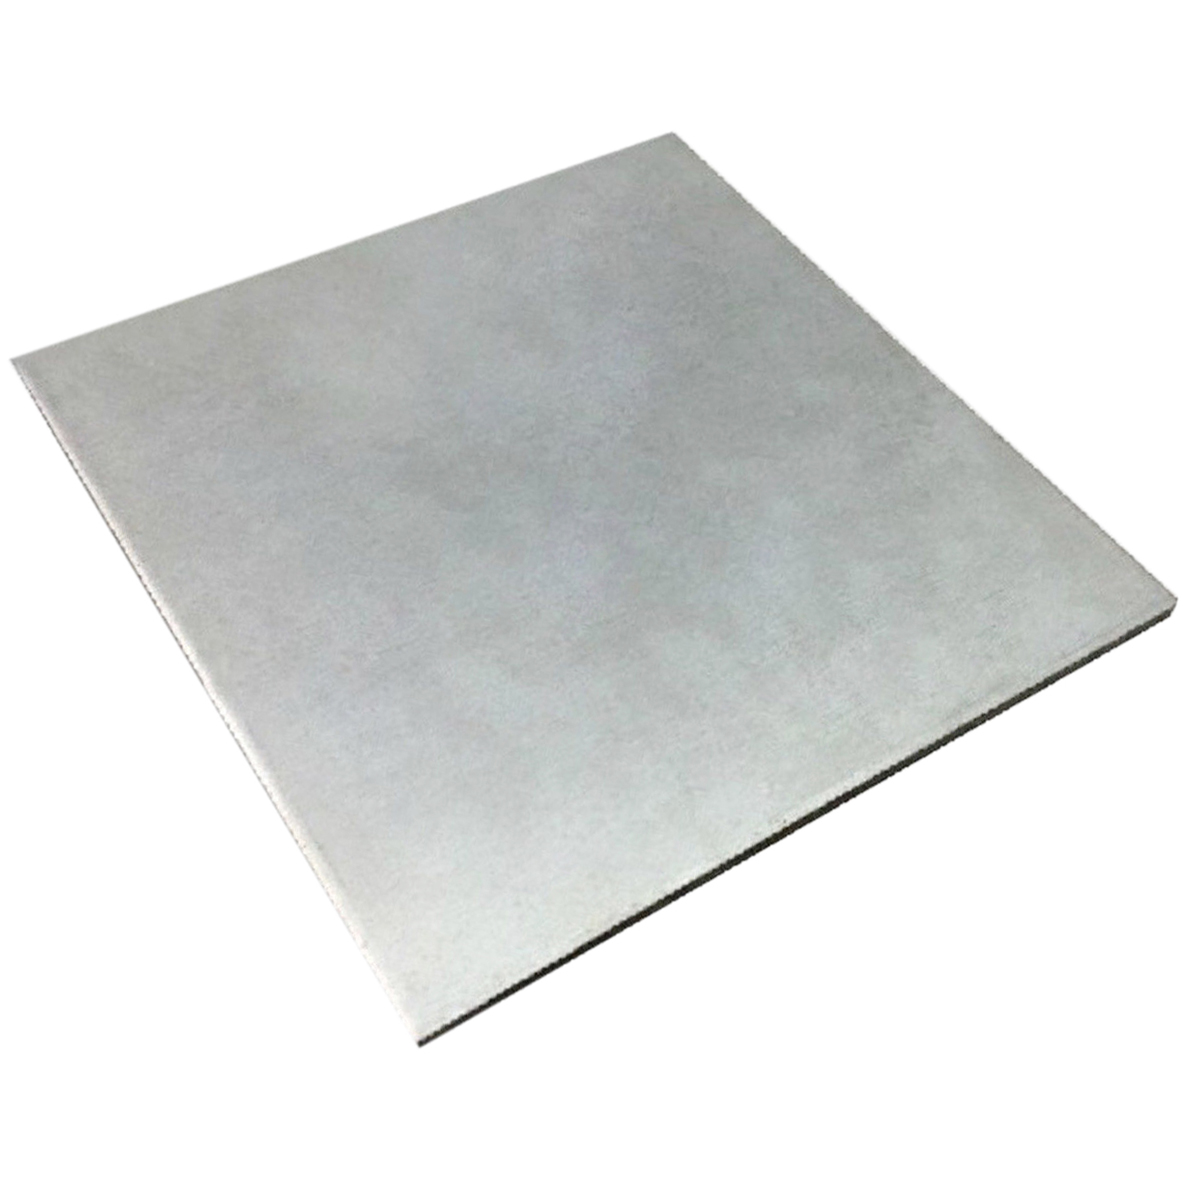 1pc Thin Titanium Metal Plate TC4/GR5 ASTM B54 Ti Sheet Foil with Corrosion Resistance 0.5mmx100mmx100mm 1pc new titanium plate sheet ti metal for industry tool 100 100 0 5